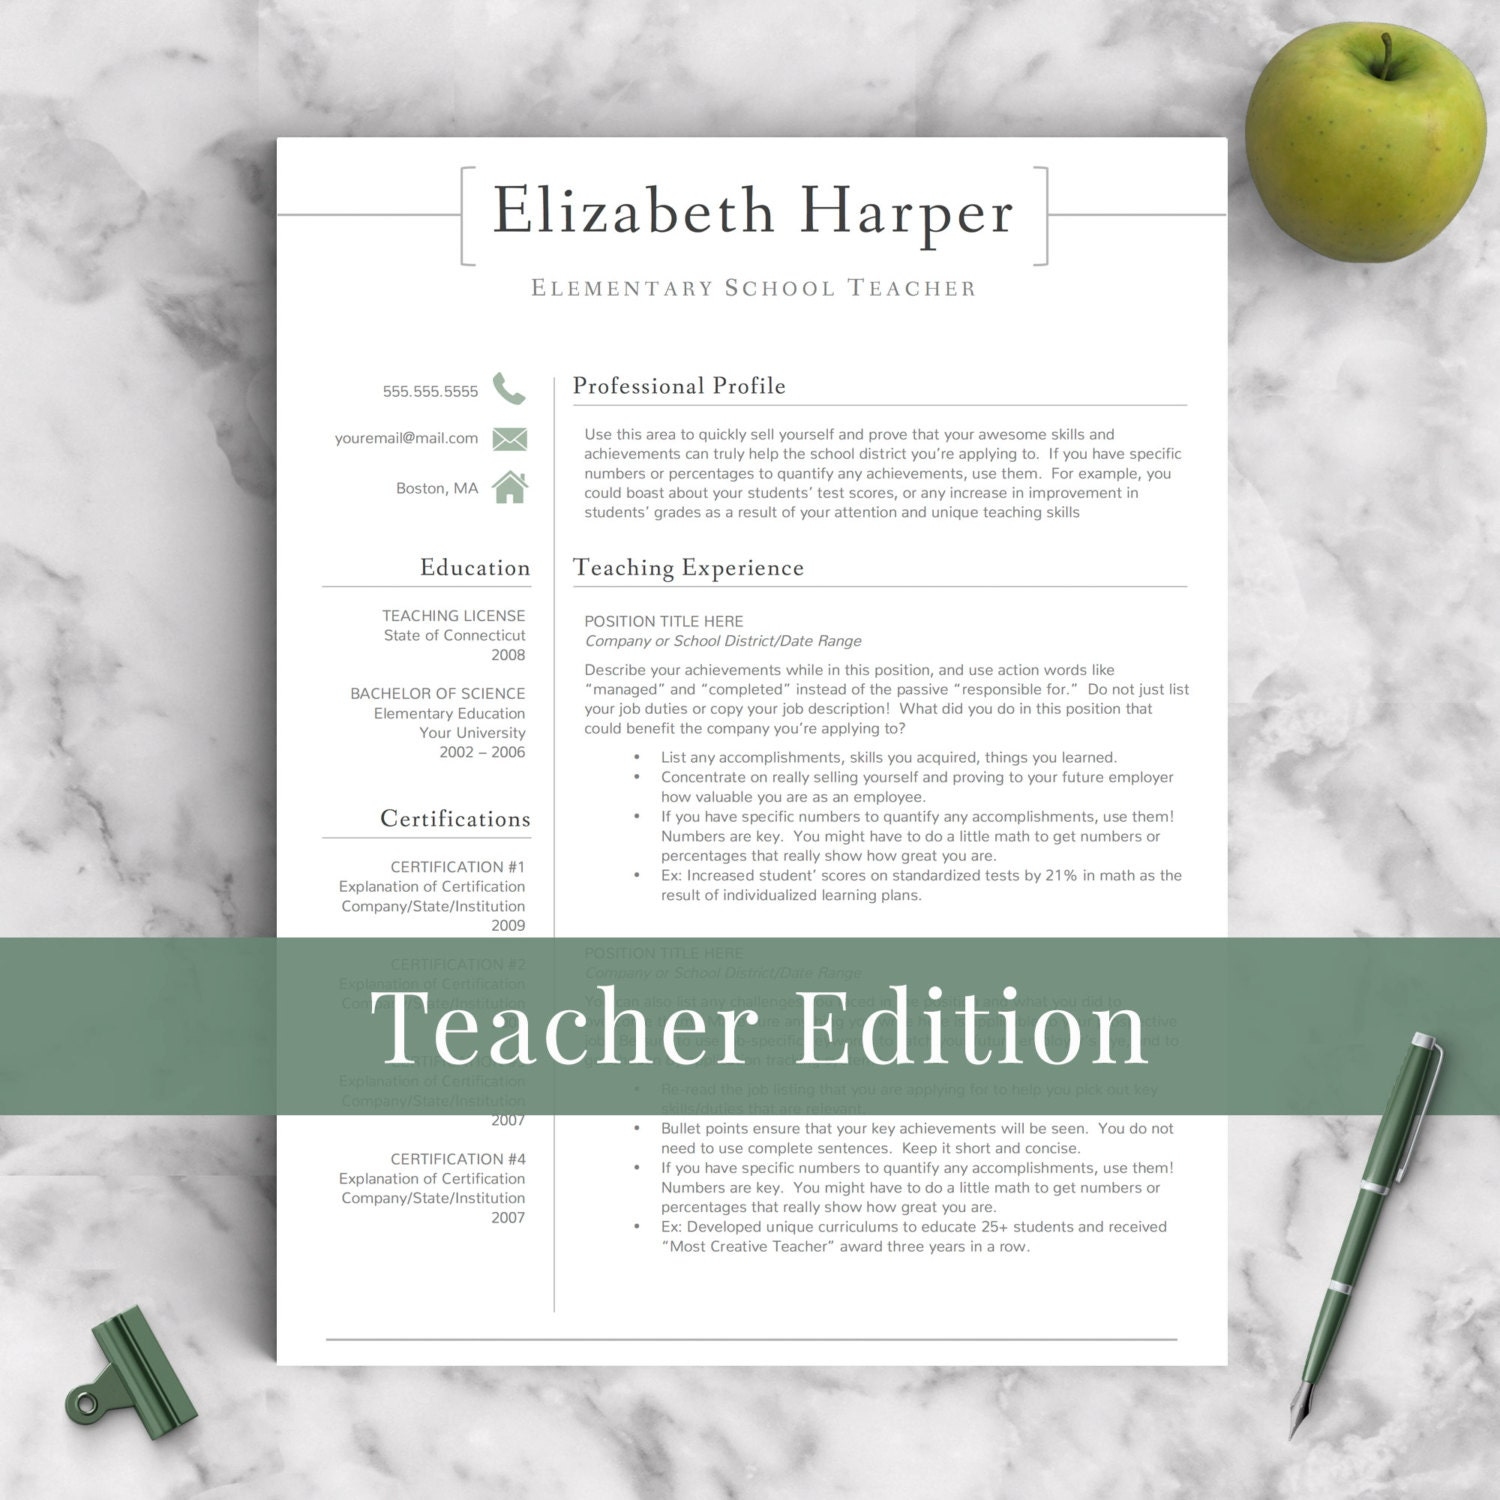 Fine 10 Envelope Template Huge 1099 Excel Template Shaped 2 Column Website Template 2014 Blank Calendar Template Old 2015 Calendars Templates Brown2015 Resume Keywords Teacher Resume Template For Word \u0026 Pages 1 3 Page Resume For